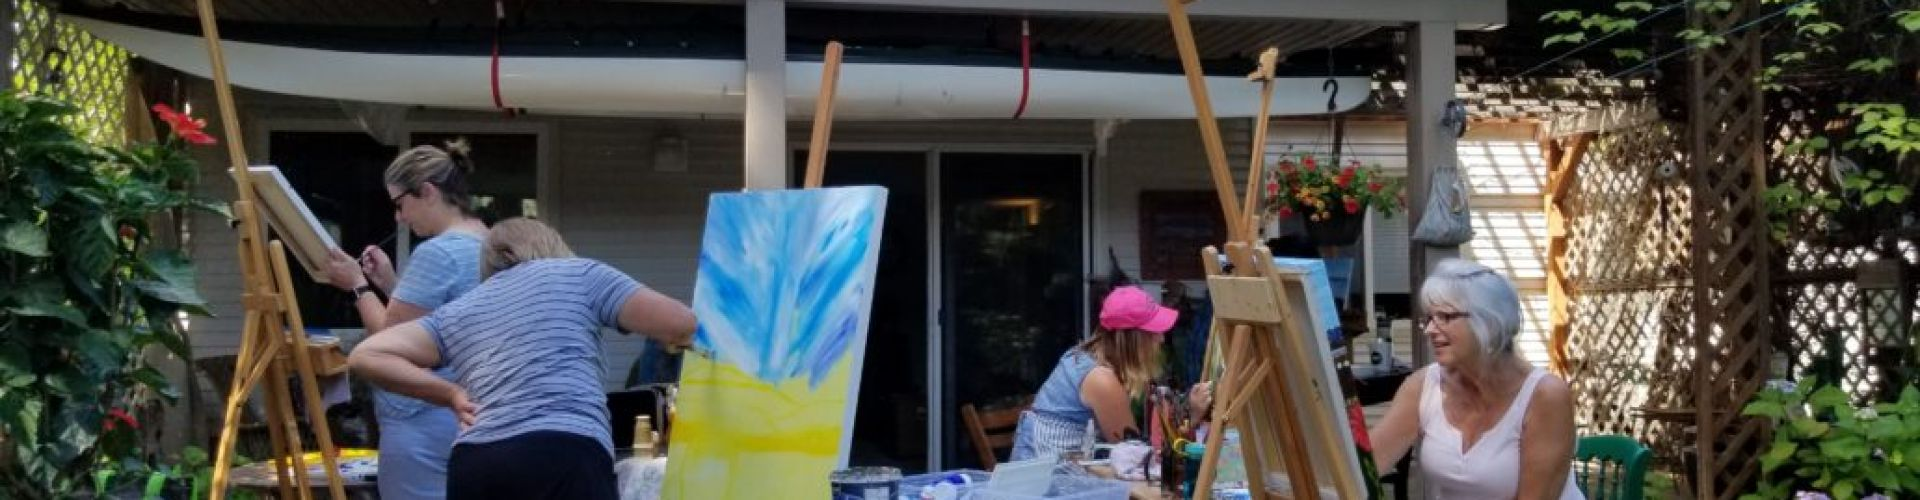 A group of people painting on canvasses outside of a house, they are at one of the classes of Linda Lovisa.